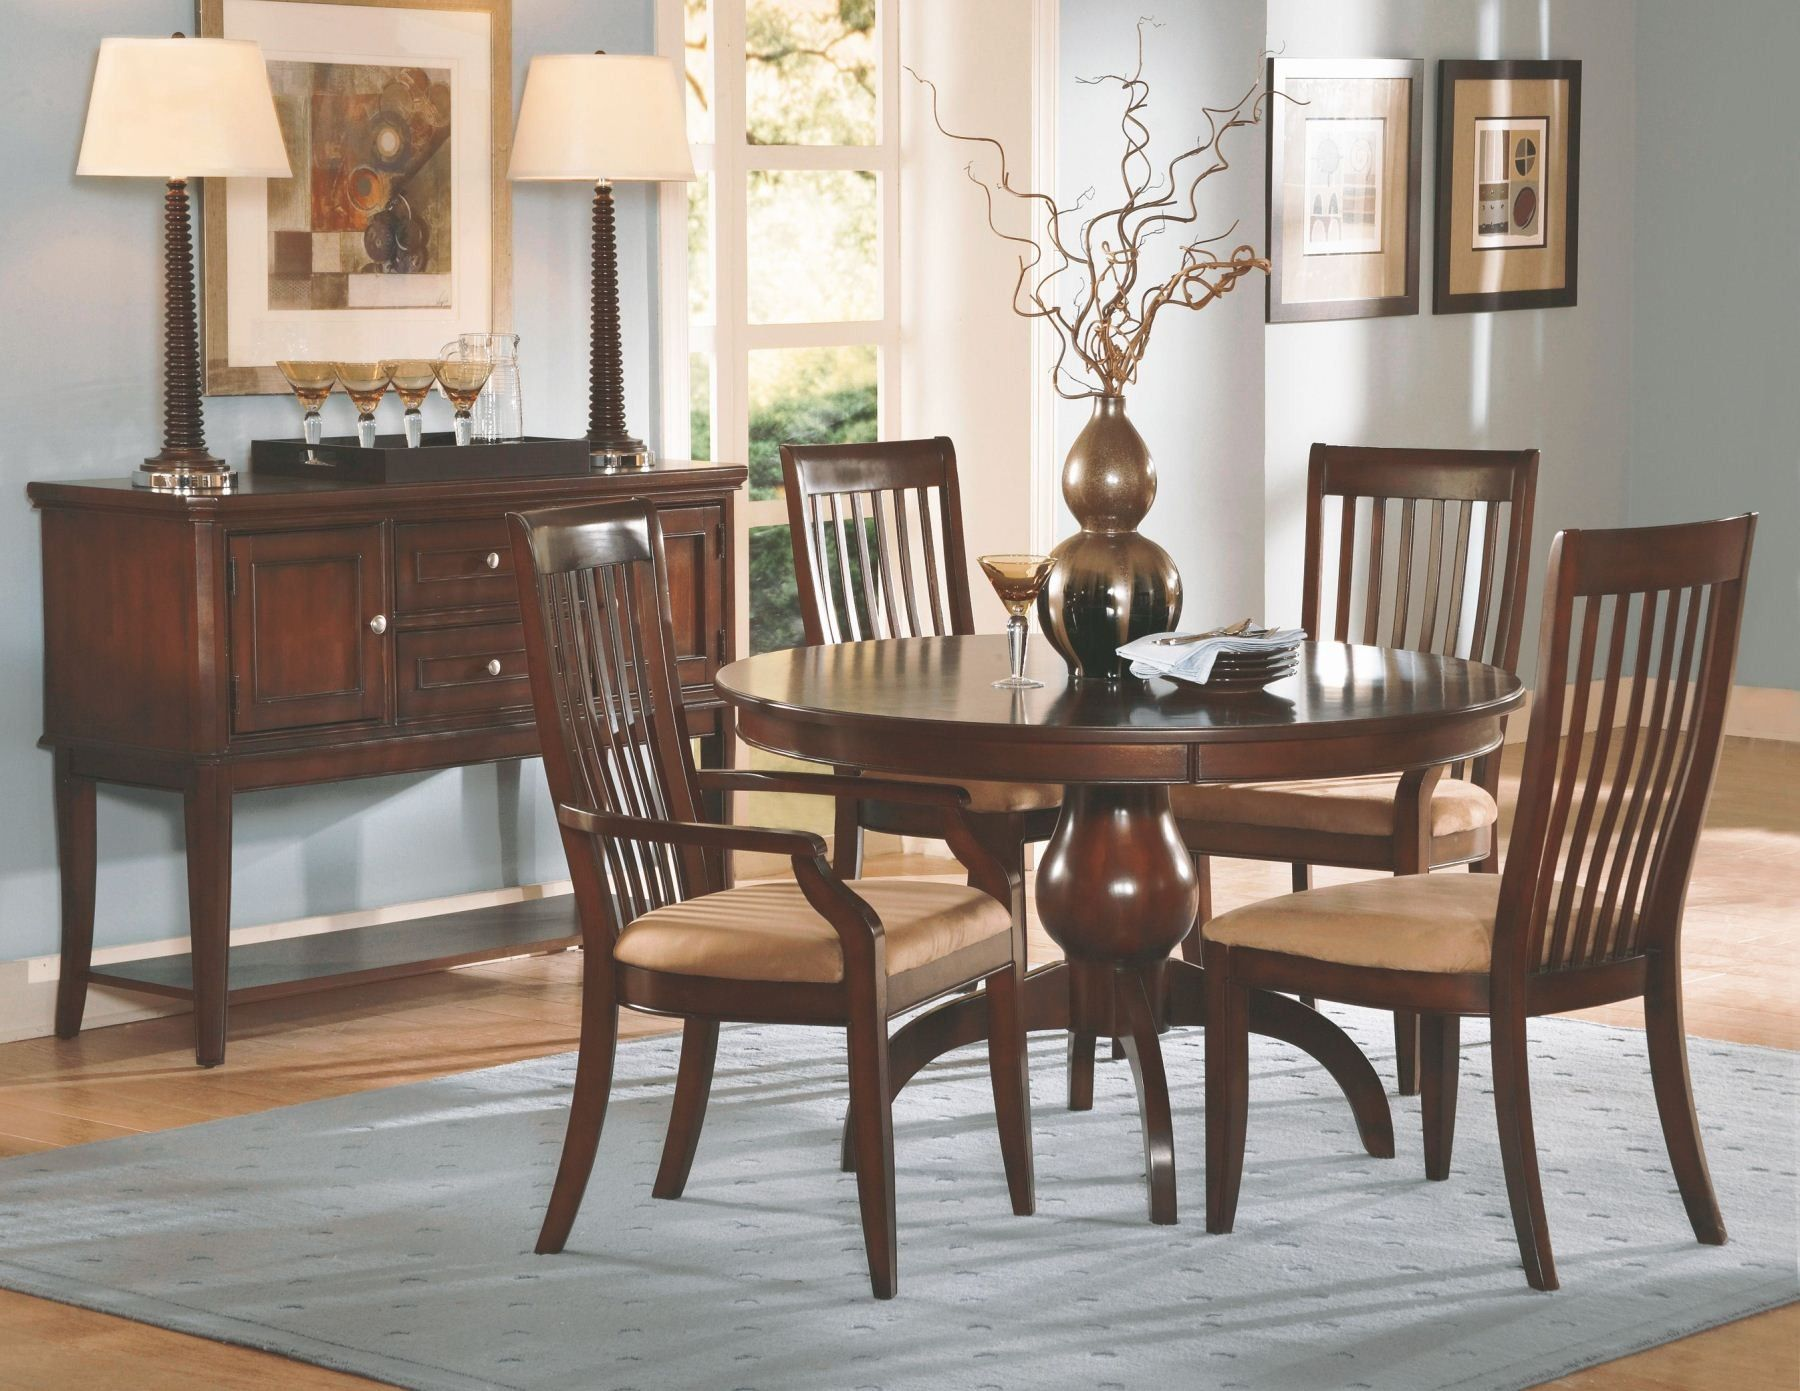 Round Dining Room Wooden Tables And Chairs  Dining Room New Retro Dining Room Tables Review